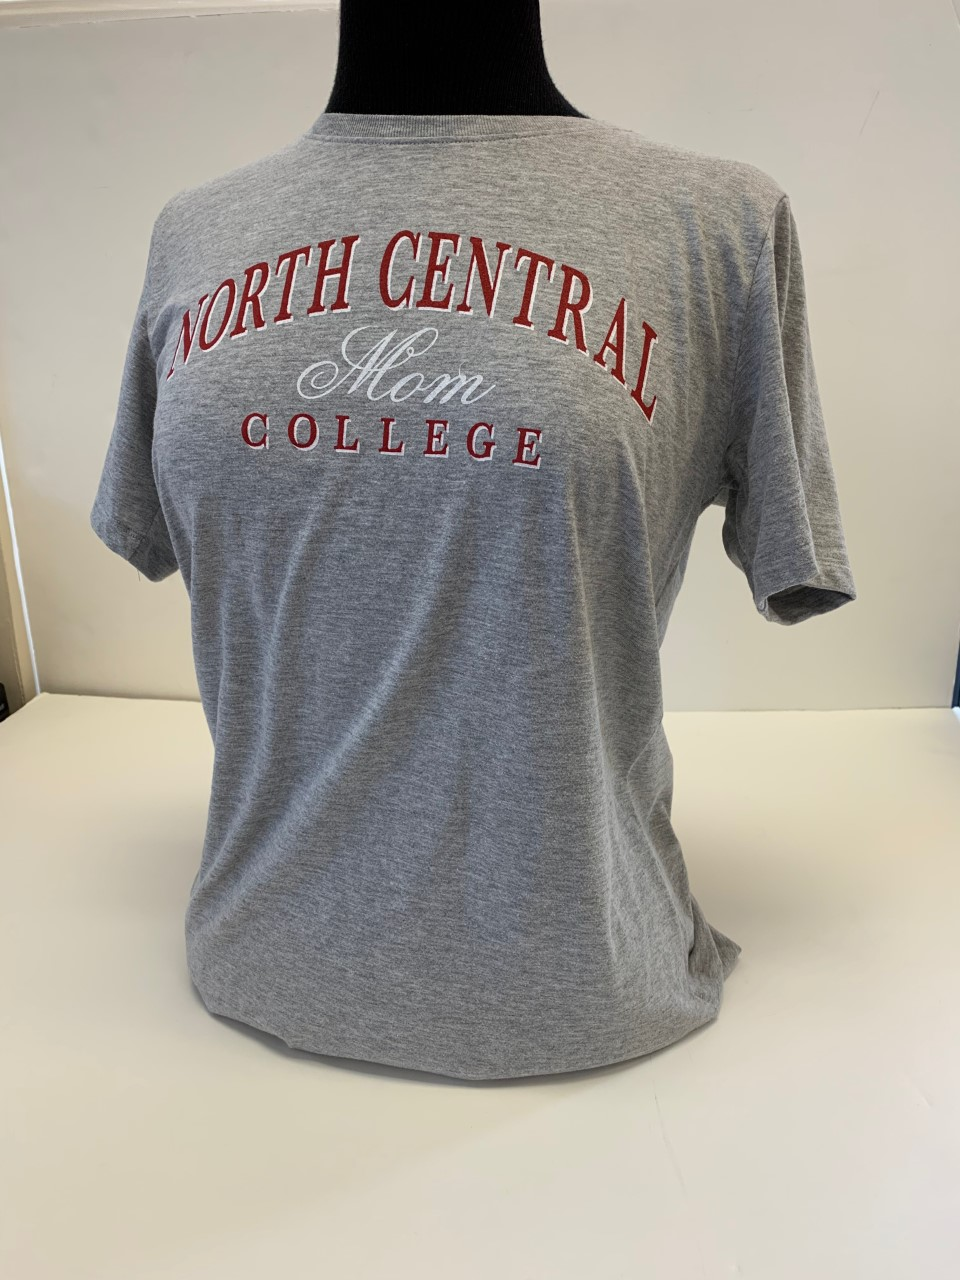 Image for the North Central College Mom Short Sleeve Tee(Gear for Sports) product